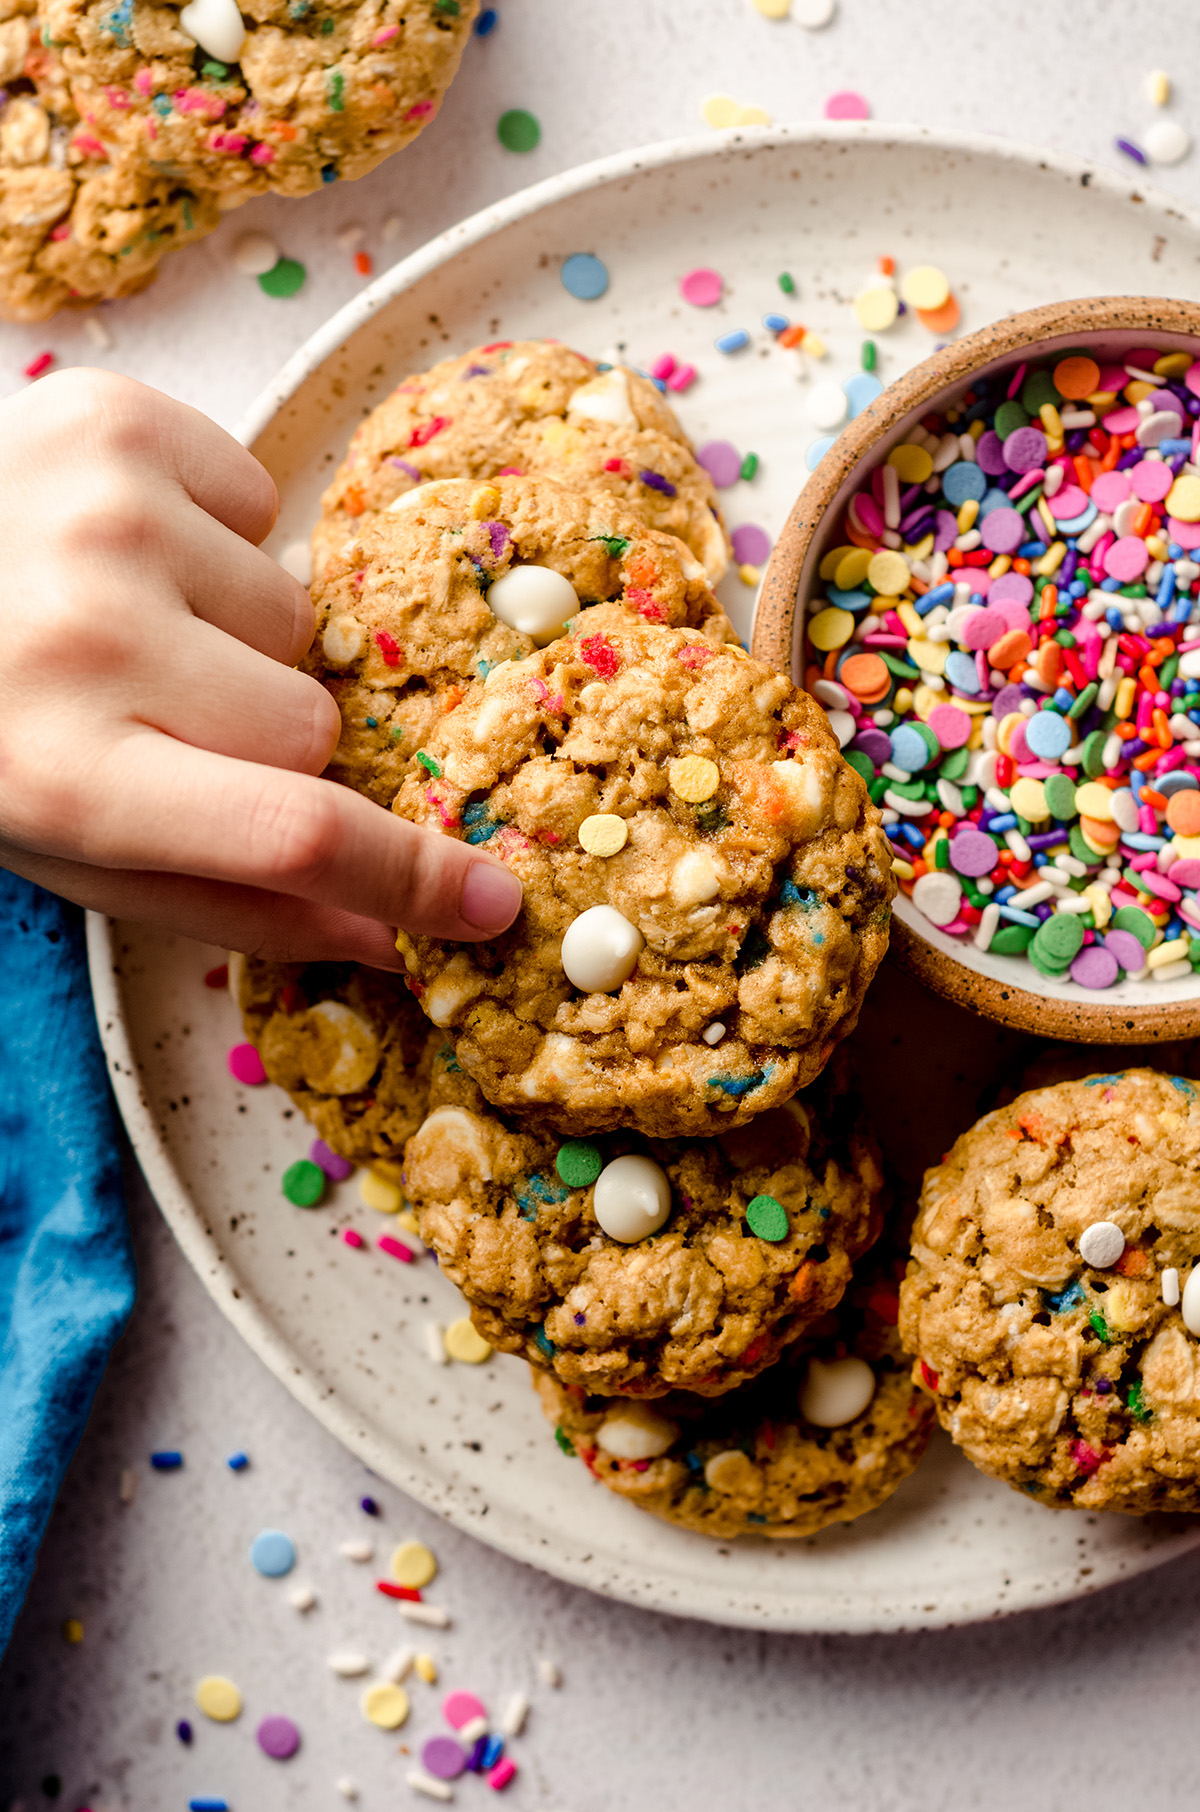 aerial photo of a child's fingers picking up a funfetti oatmeal cookie up from a plate of cookies